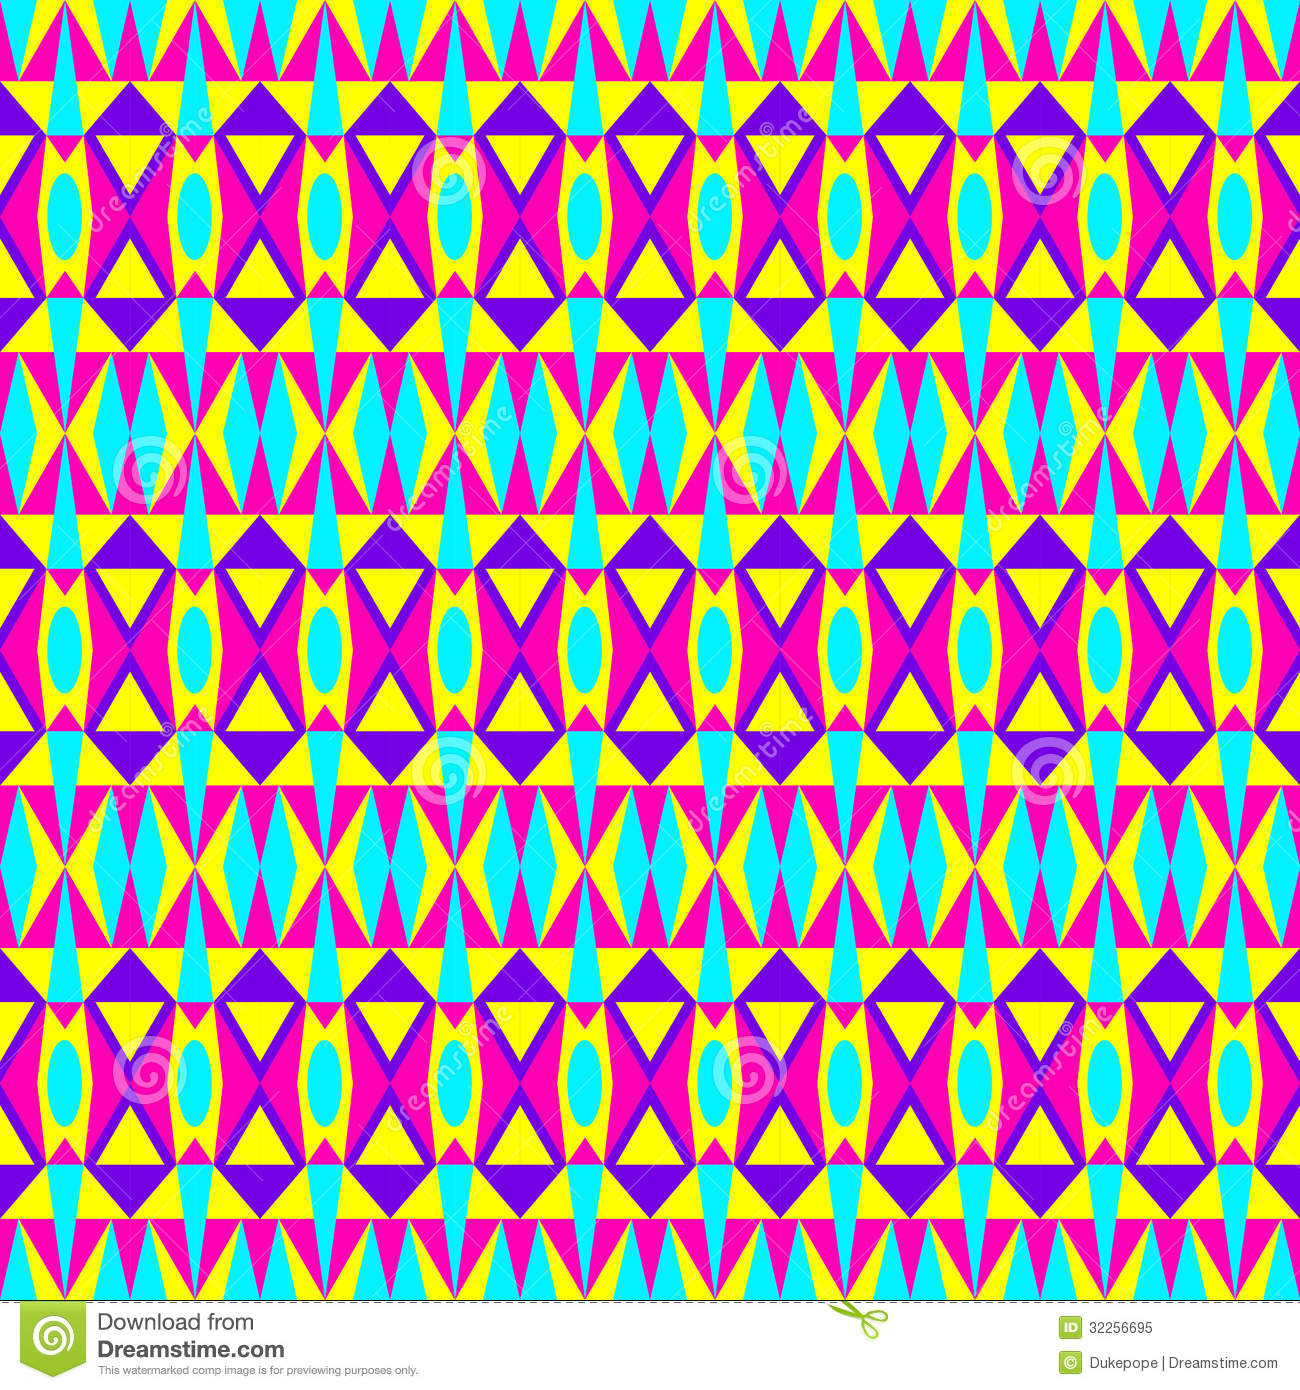 90s Tumblr Wallpaper 80s Neon Patterns 80s Neon 1300x1390